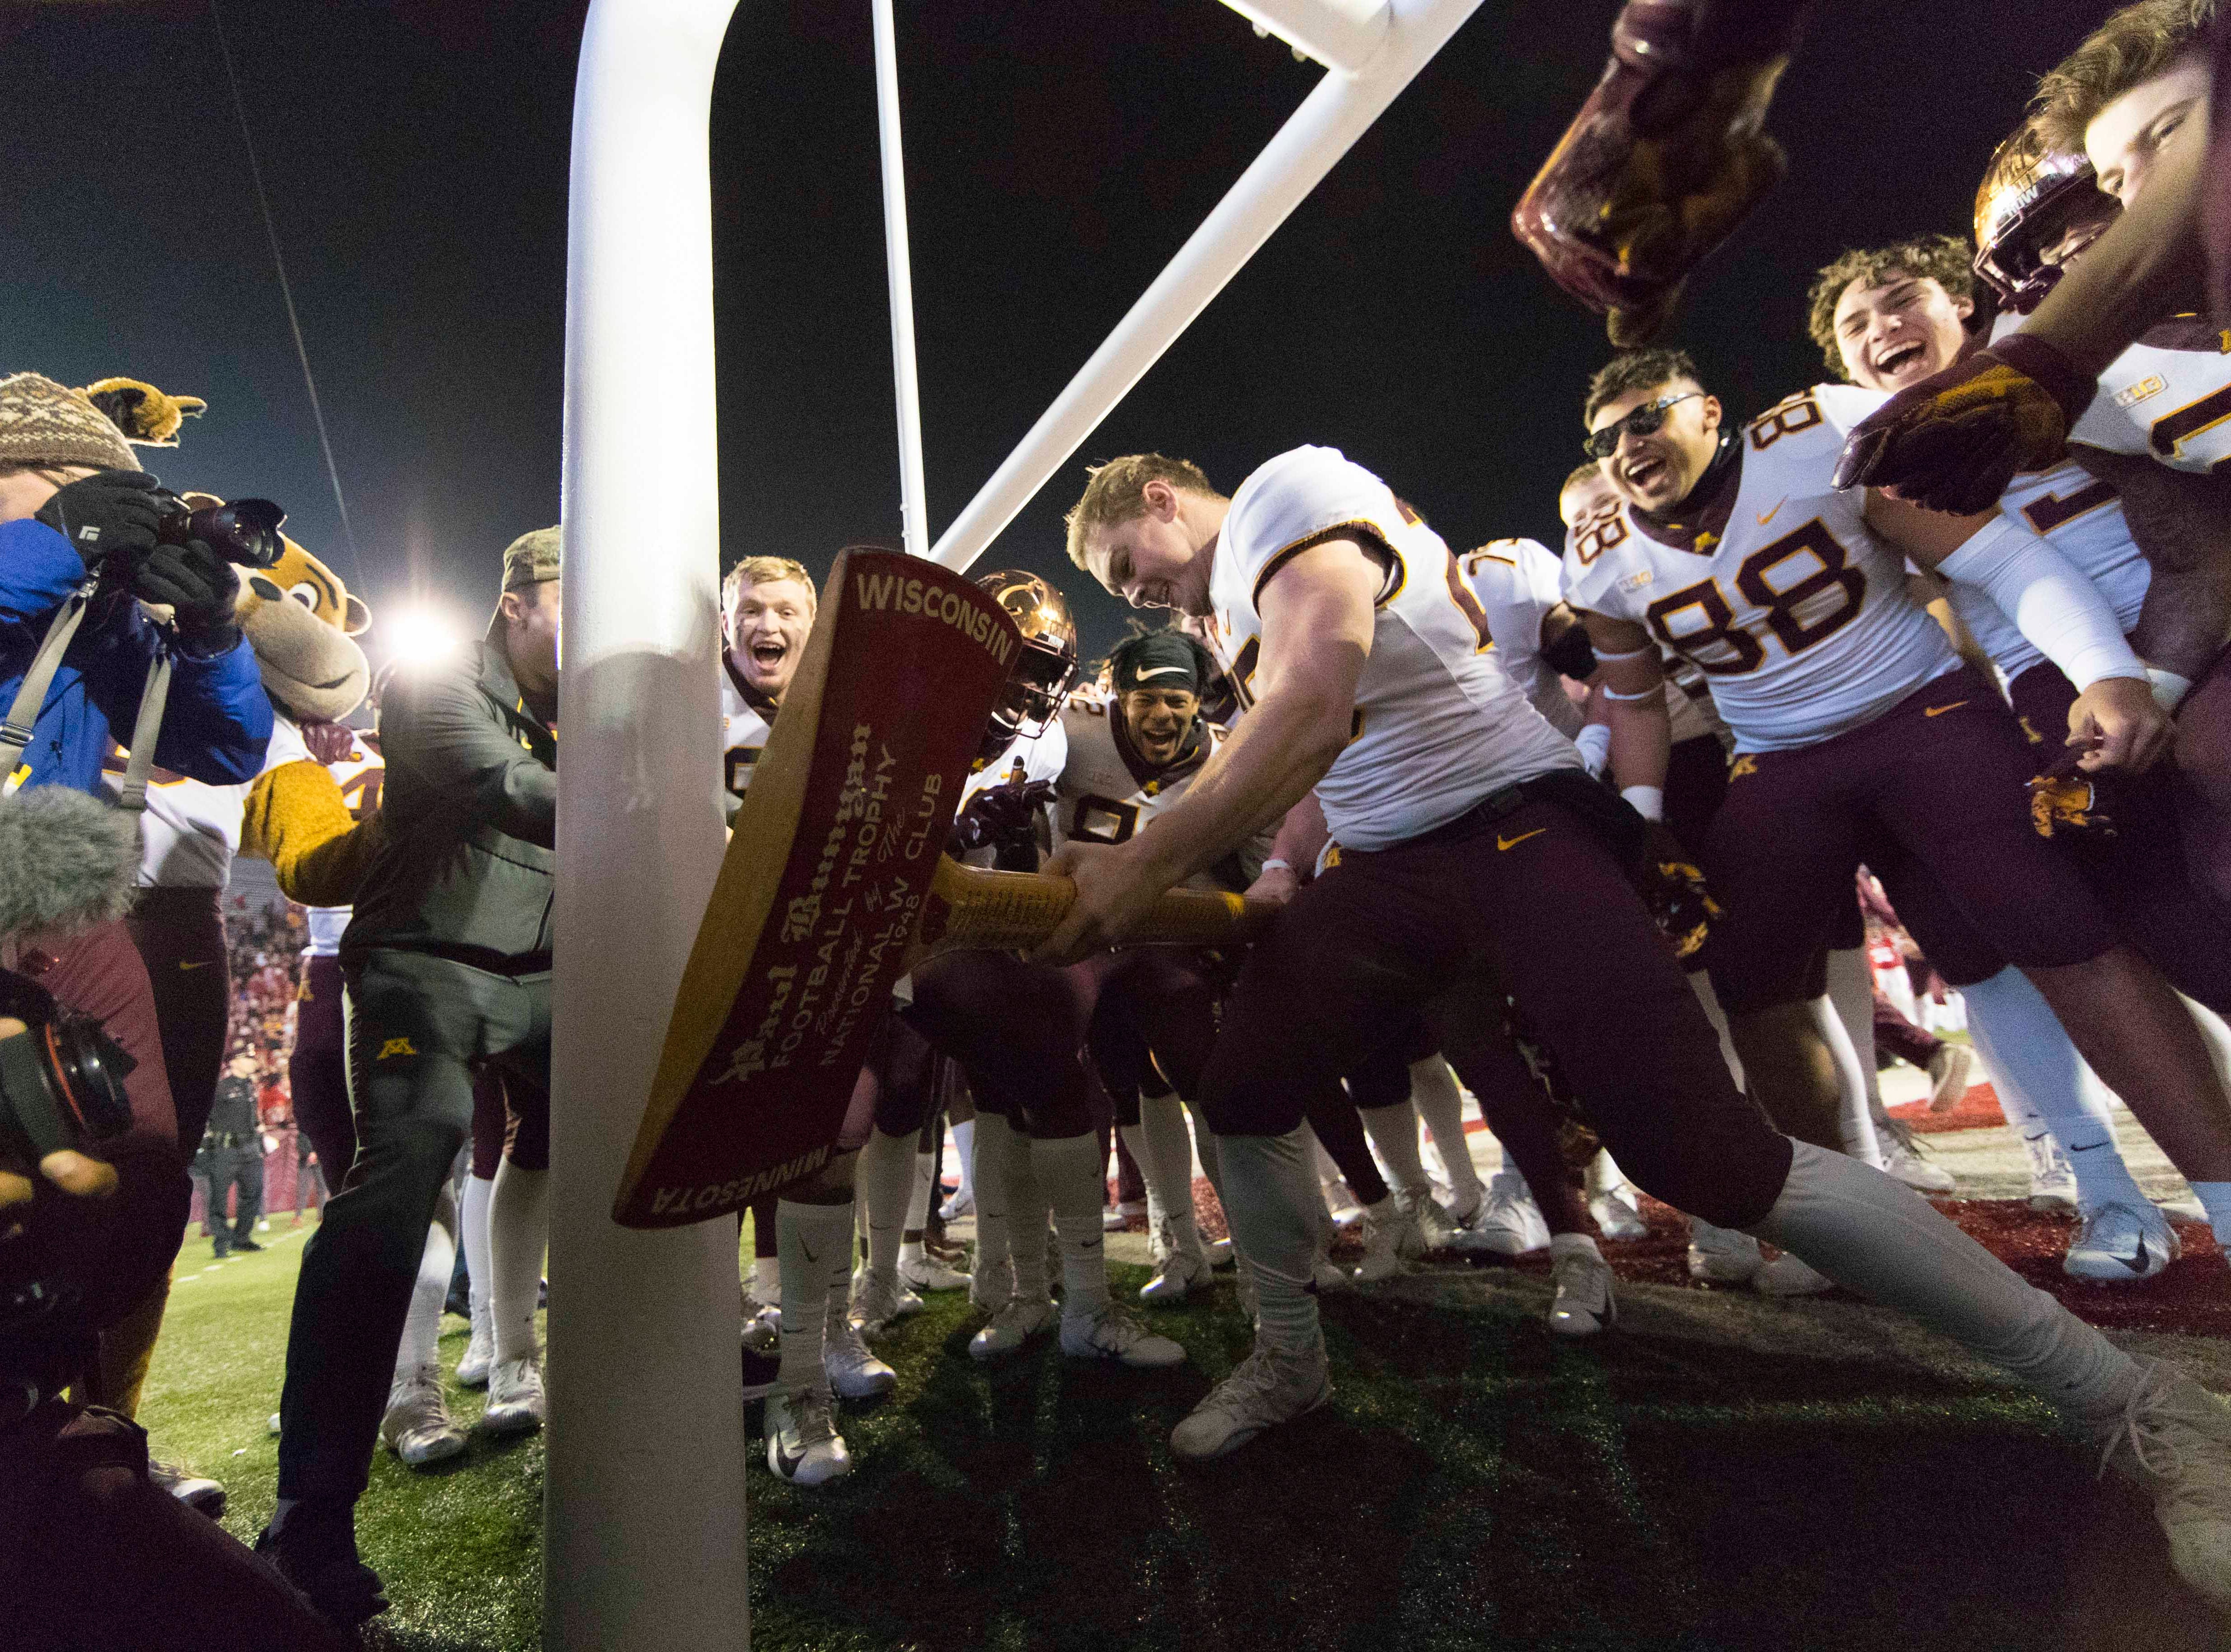 Nov. 24: The Minnesota Golden Gophers celebrate with Paul Bunyan's Axe after beating the Wisconsin Badgers at Camp Randall Stadium.